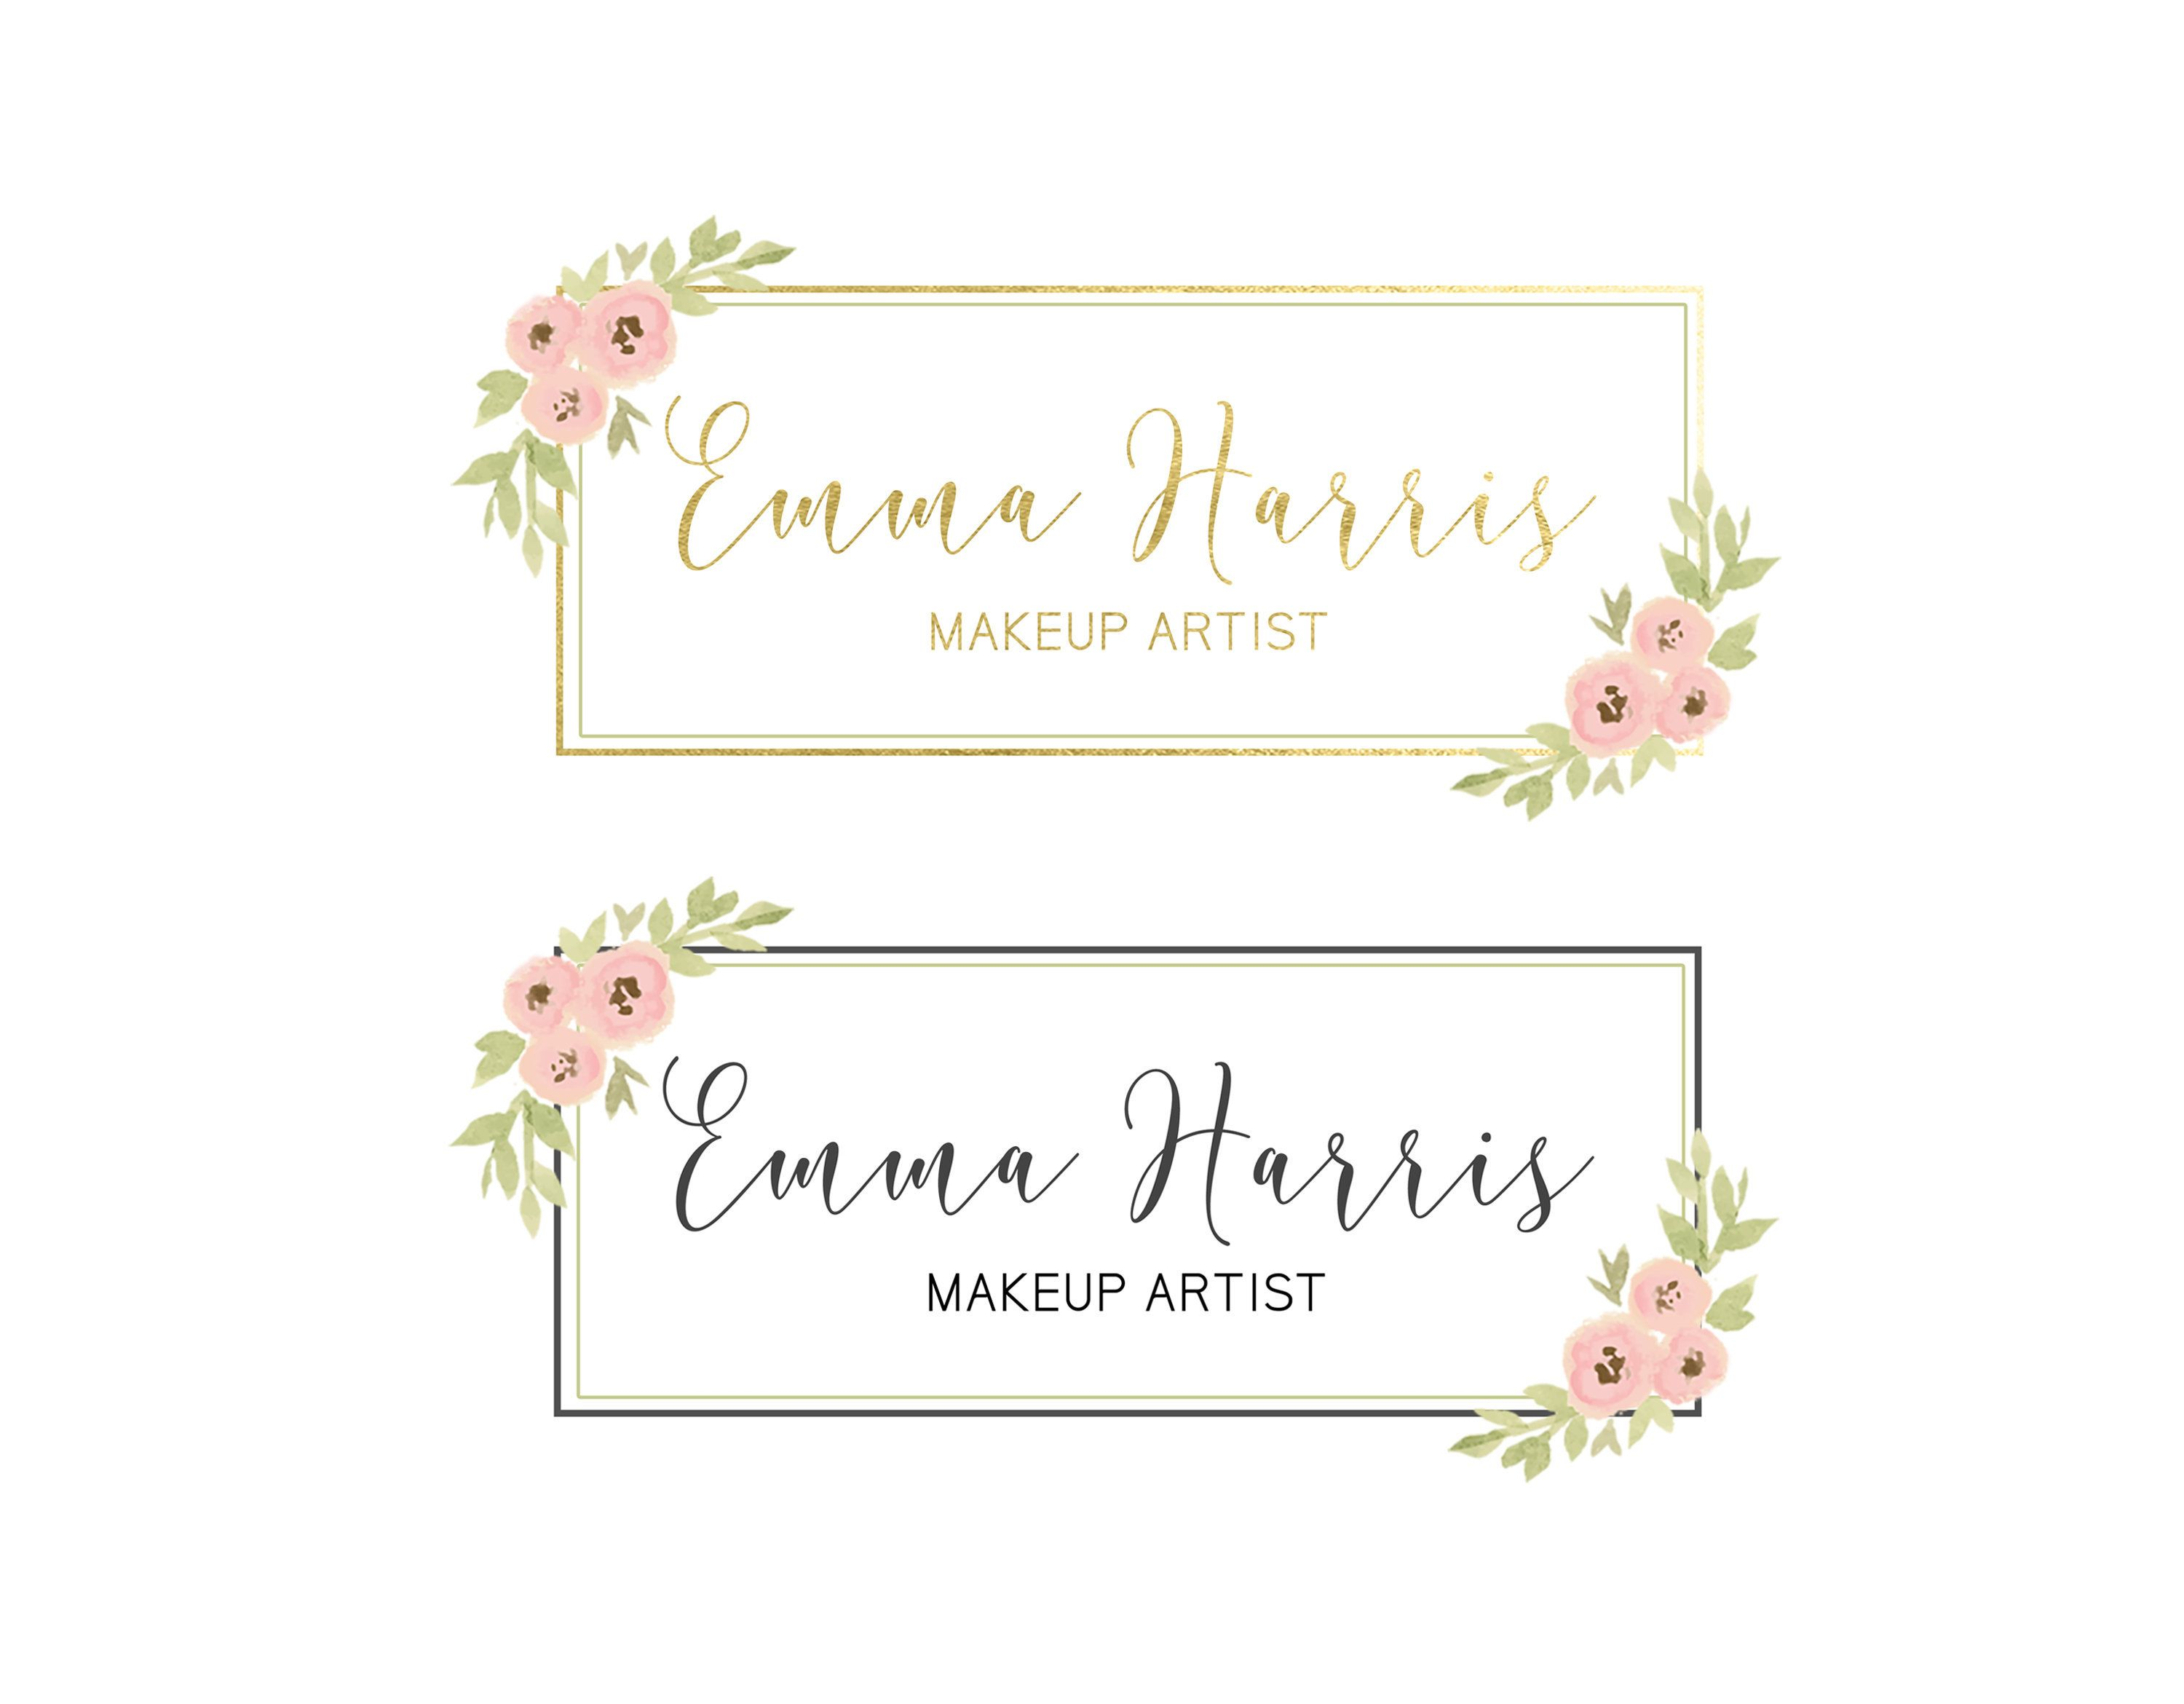 Watercolor Floral Banner Set Blog Header Set With Floral